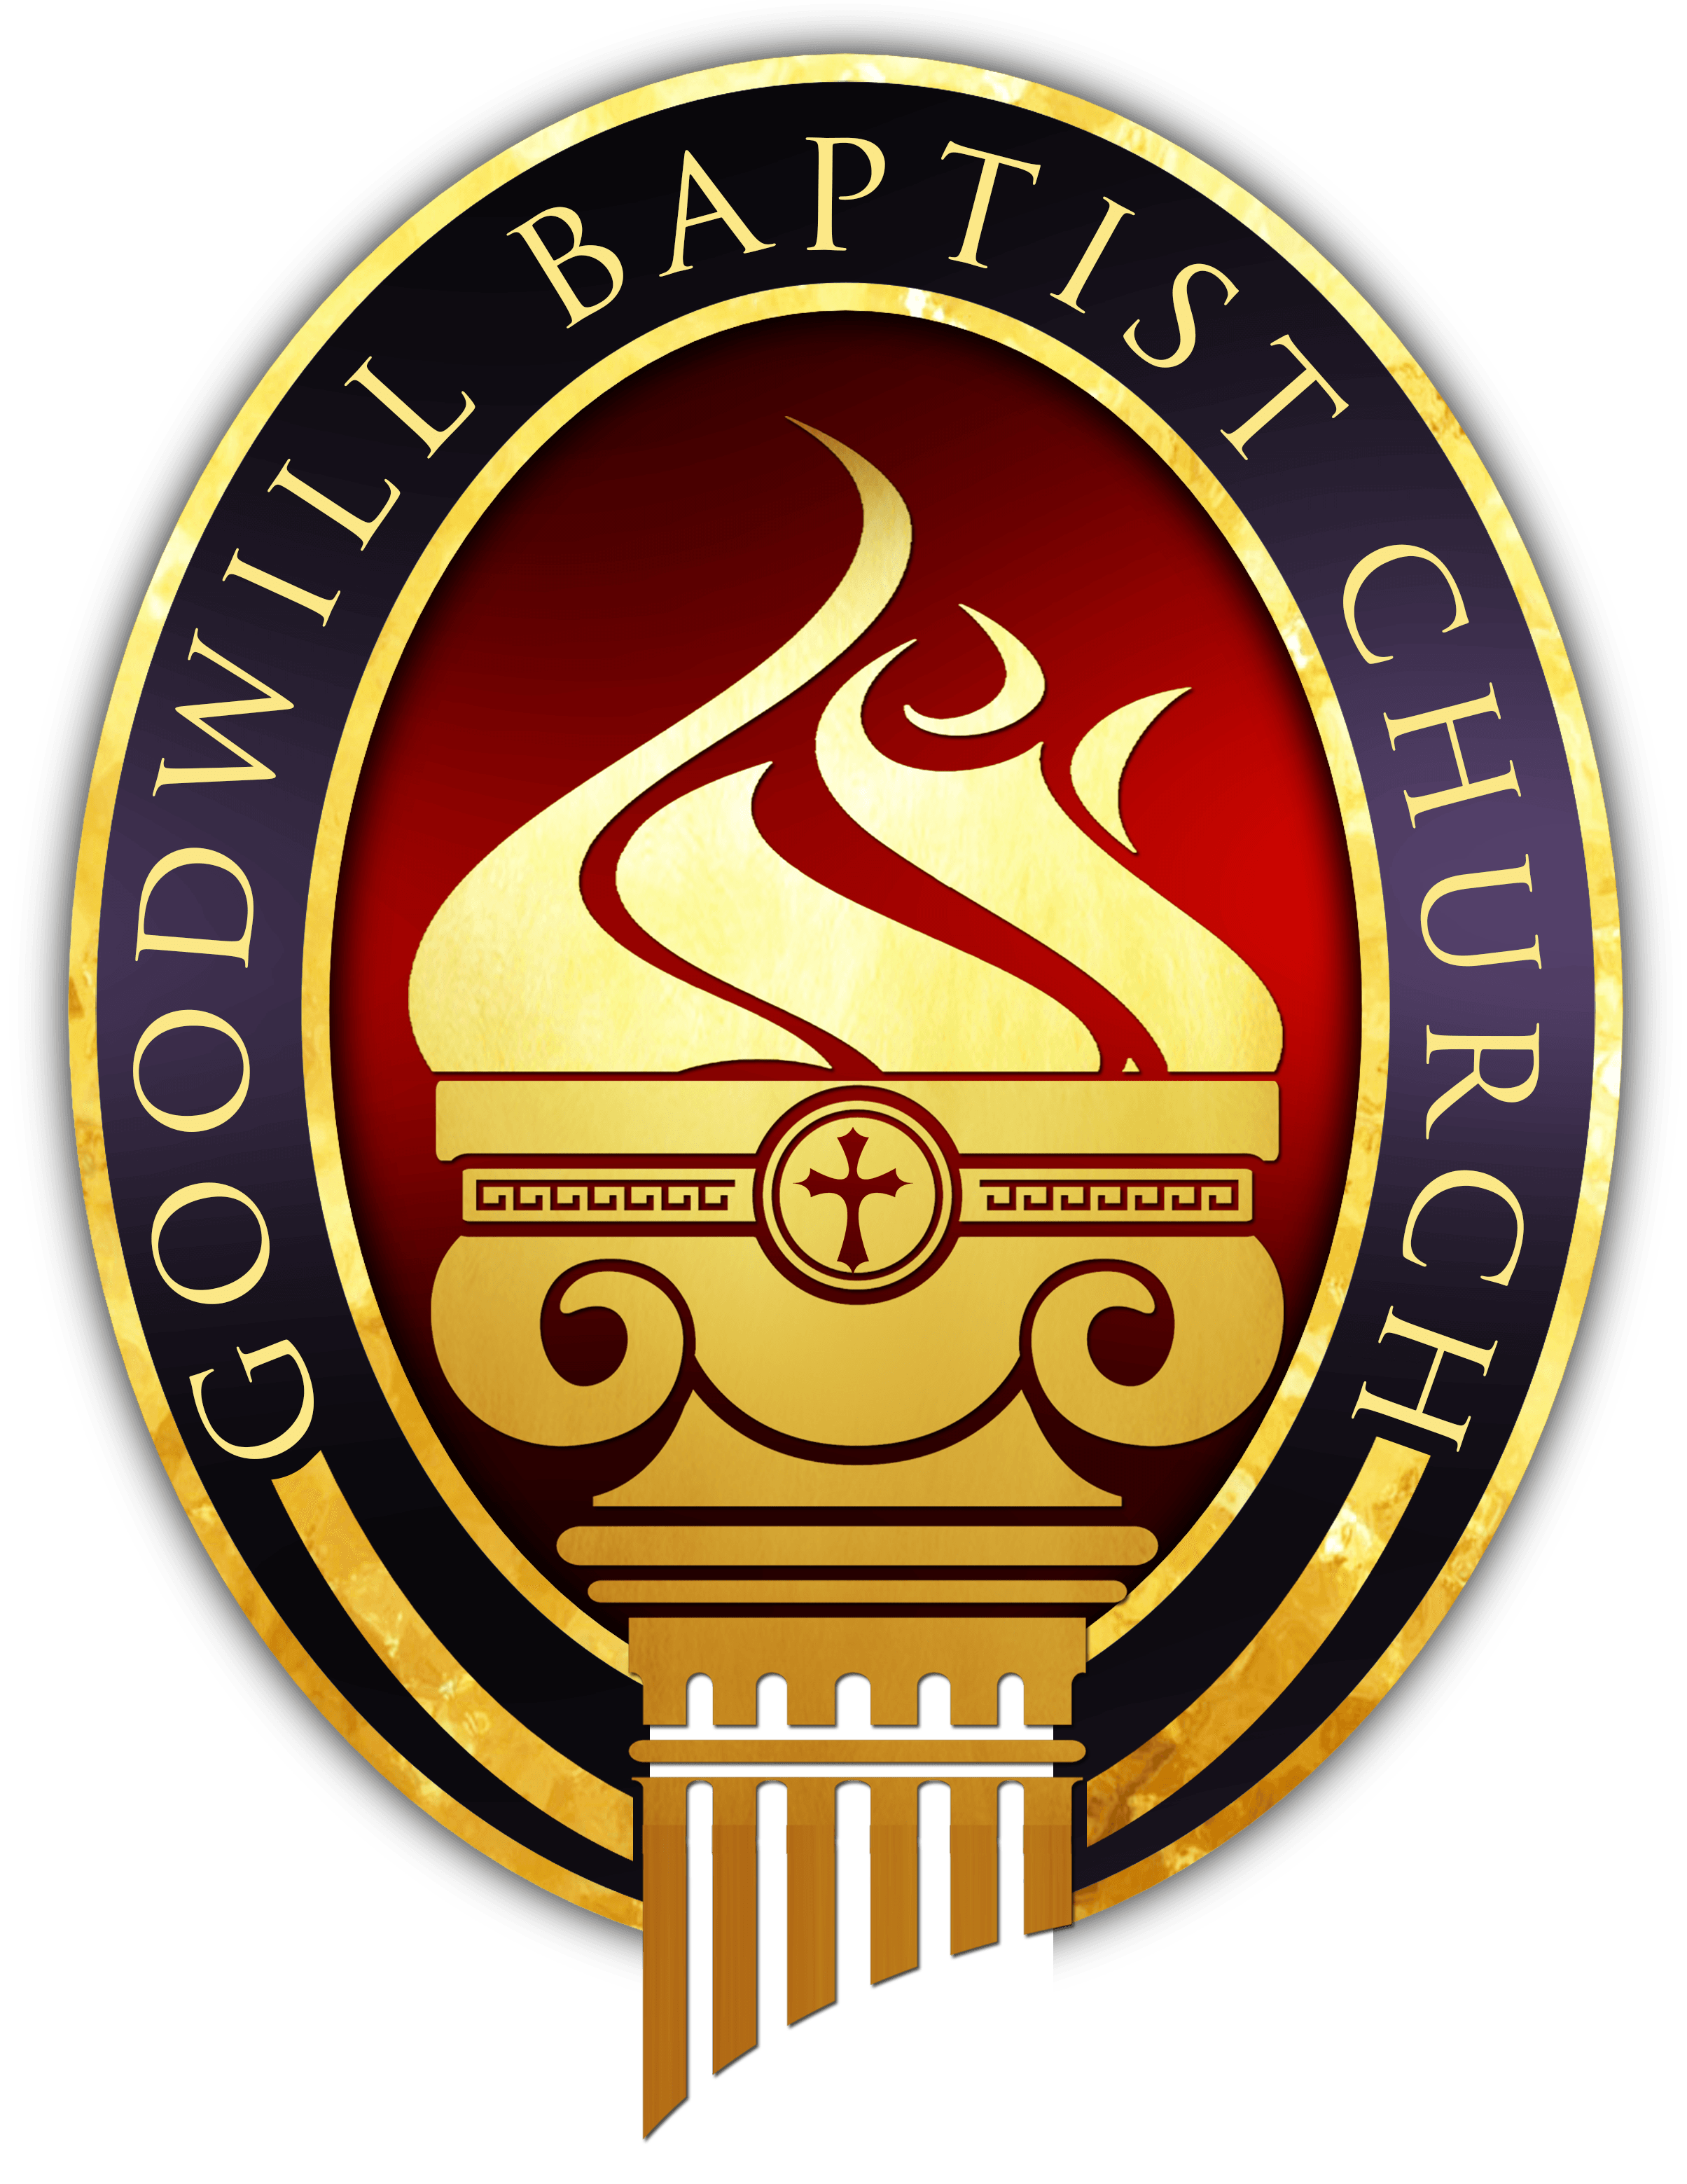 goodwill_baptist_church.png